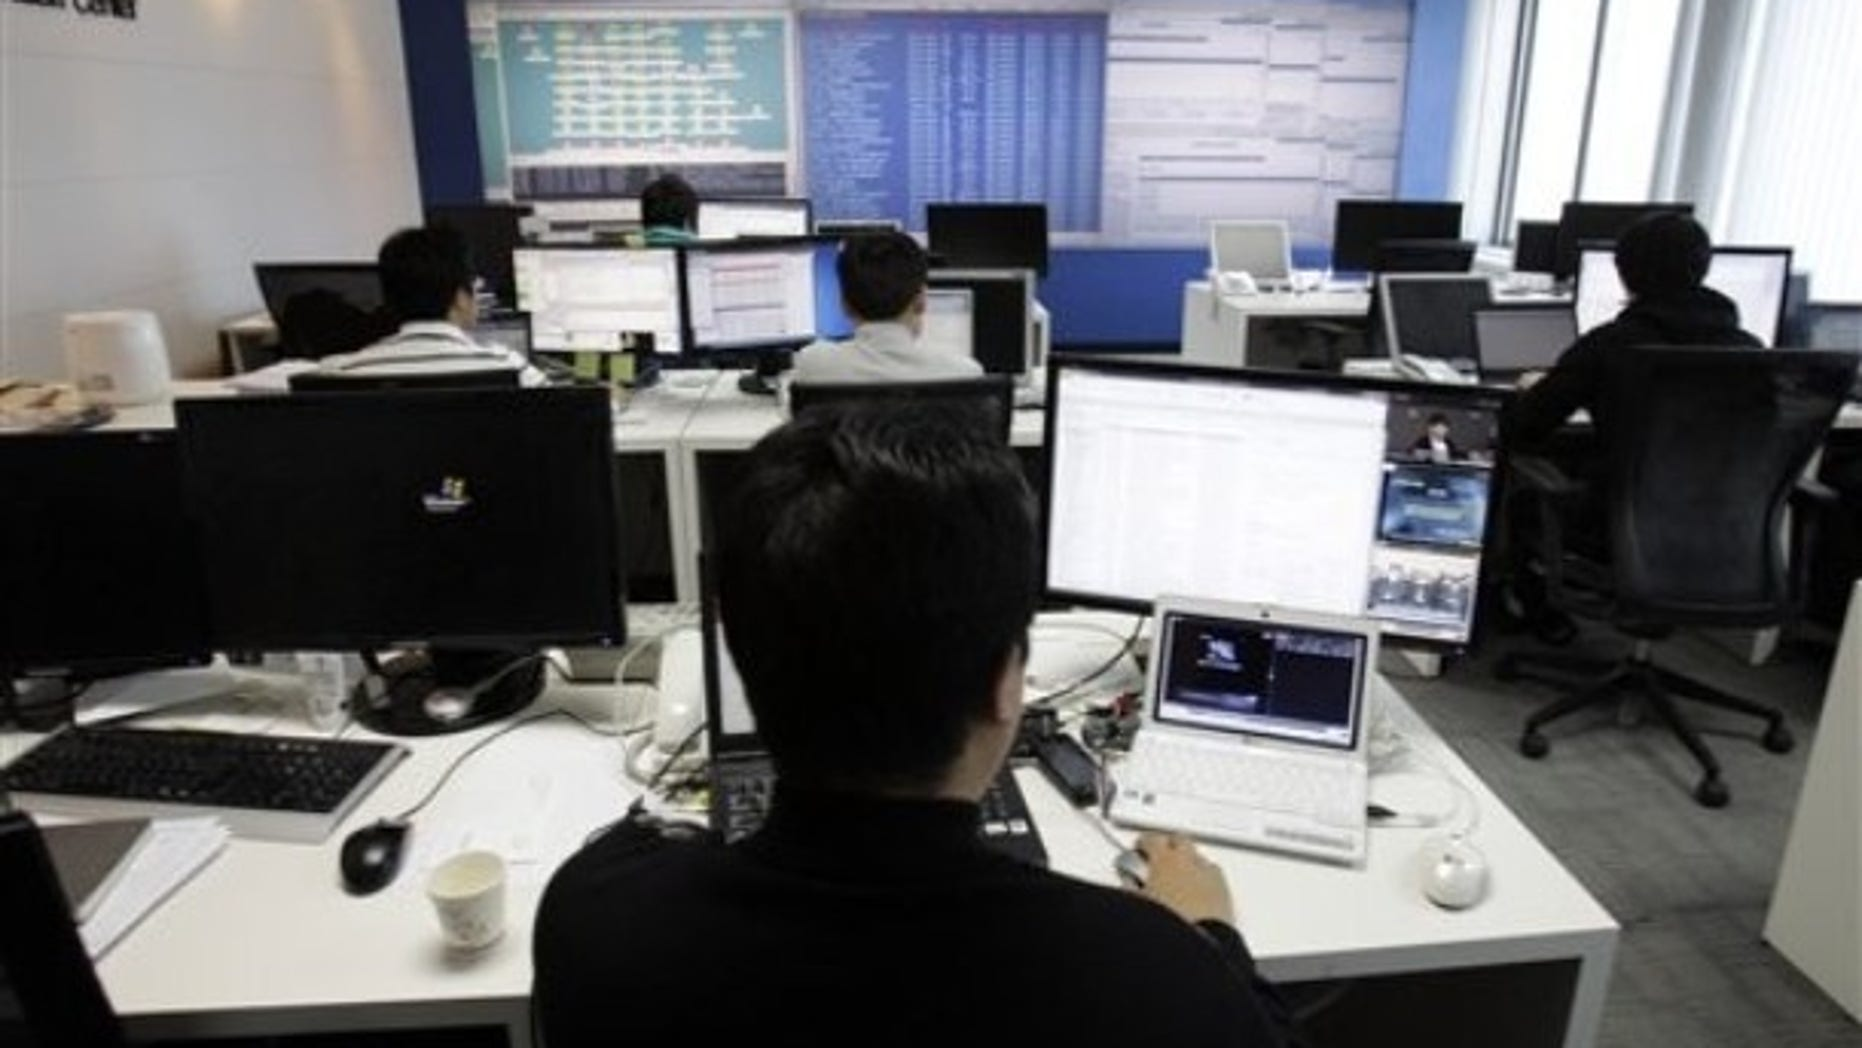 Technicians of AhnLab Inc. work against cyberattacks at the company's Security Operation Center in Seoul, South Korea